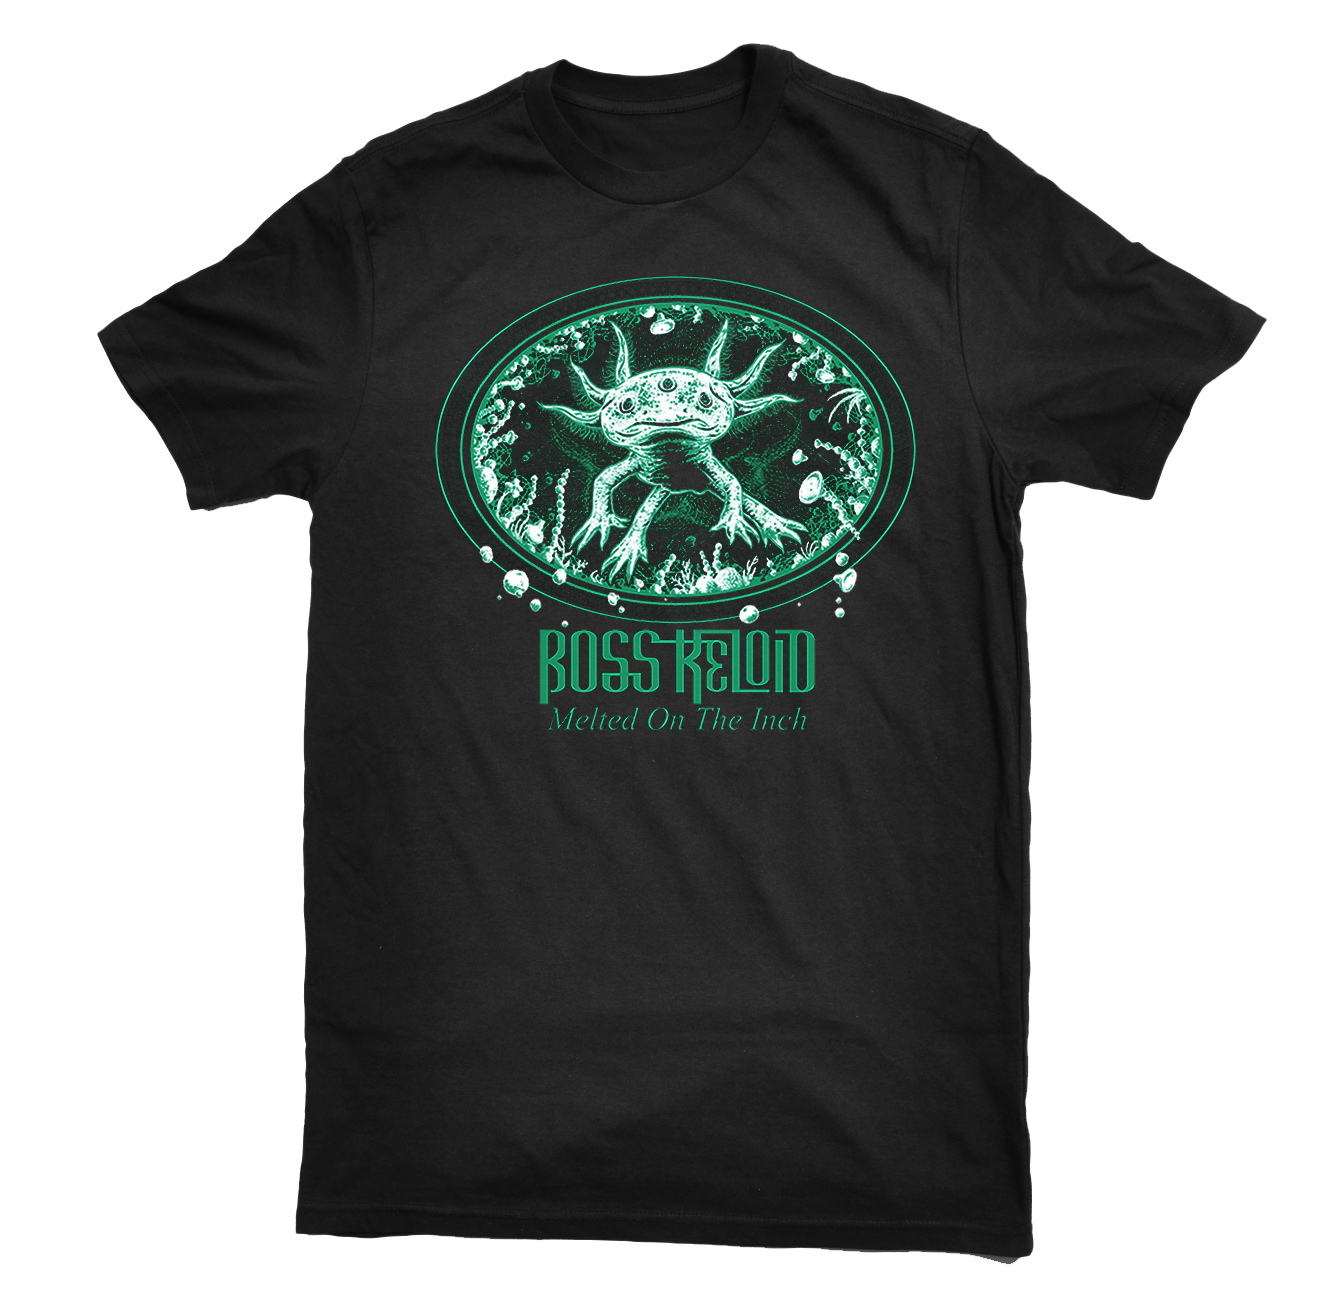 Boss Keloid - Melted On The Inch 'Axolotl' shirt PREORDER